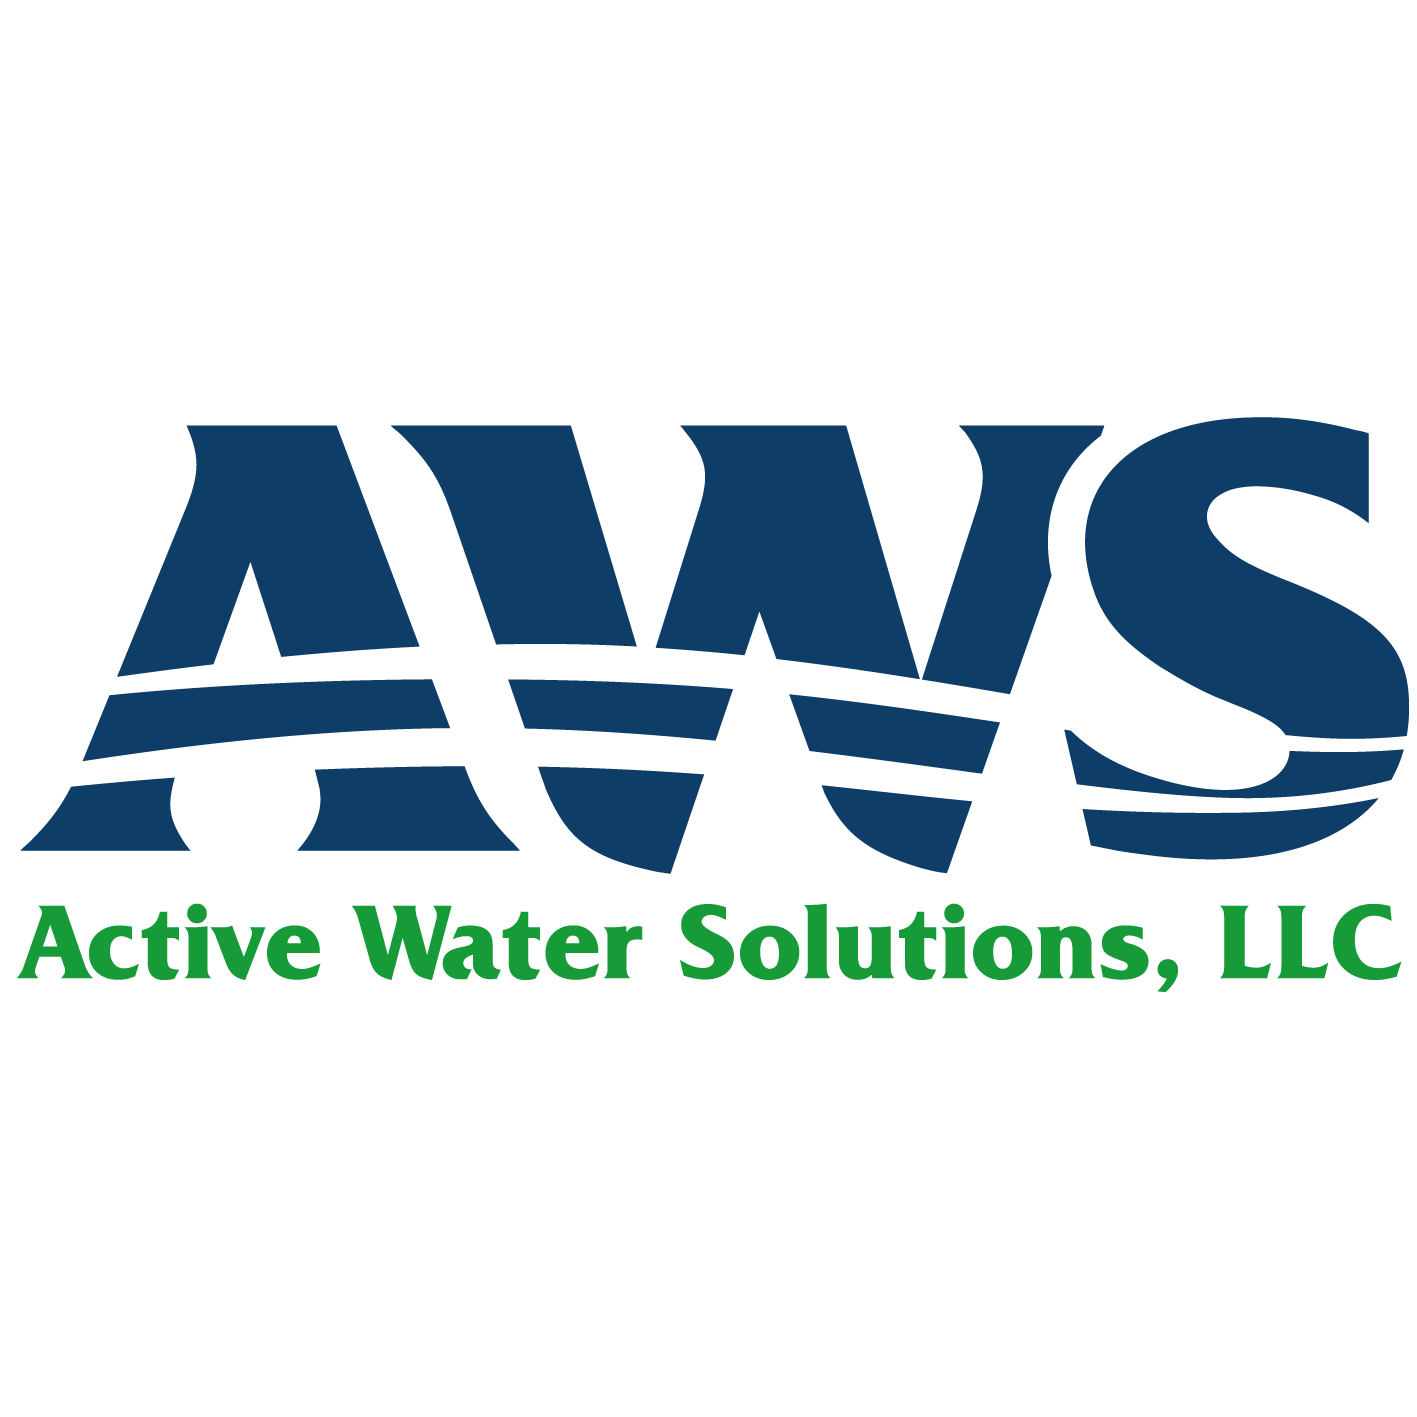 Active Water Solutions image 3